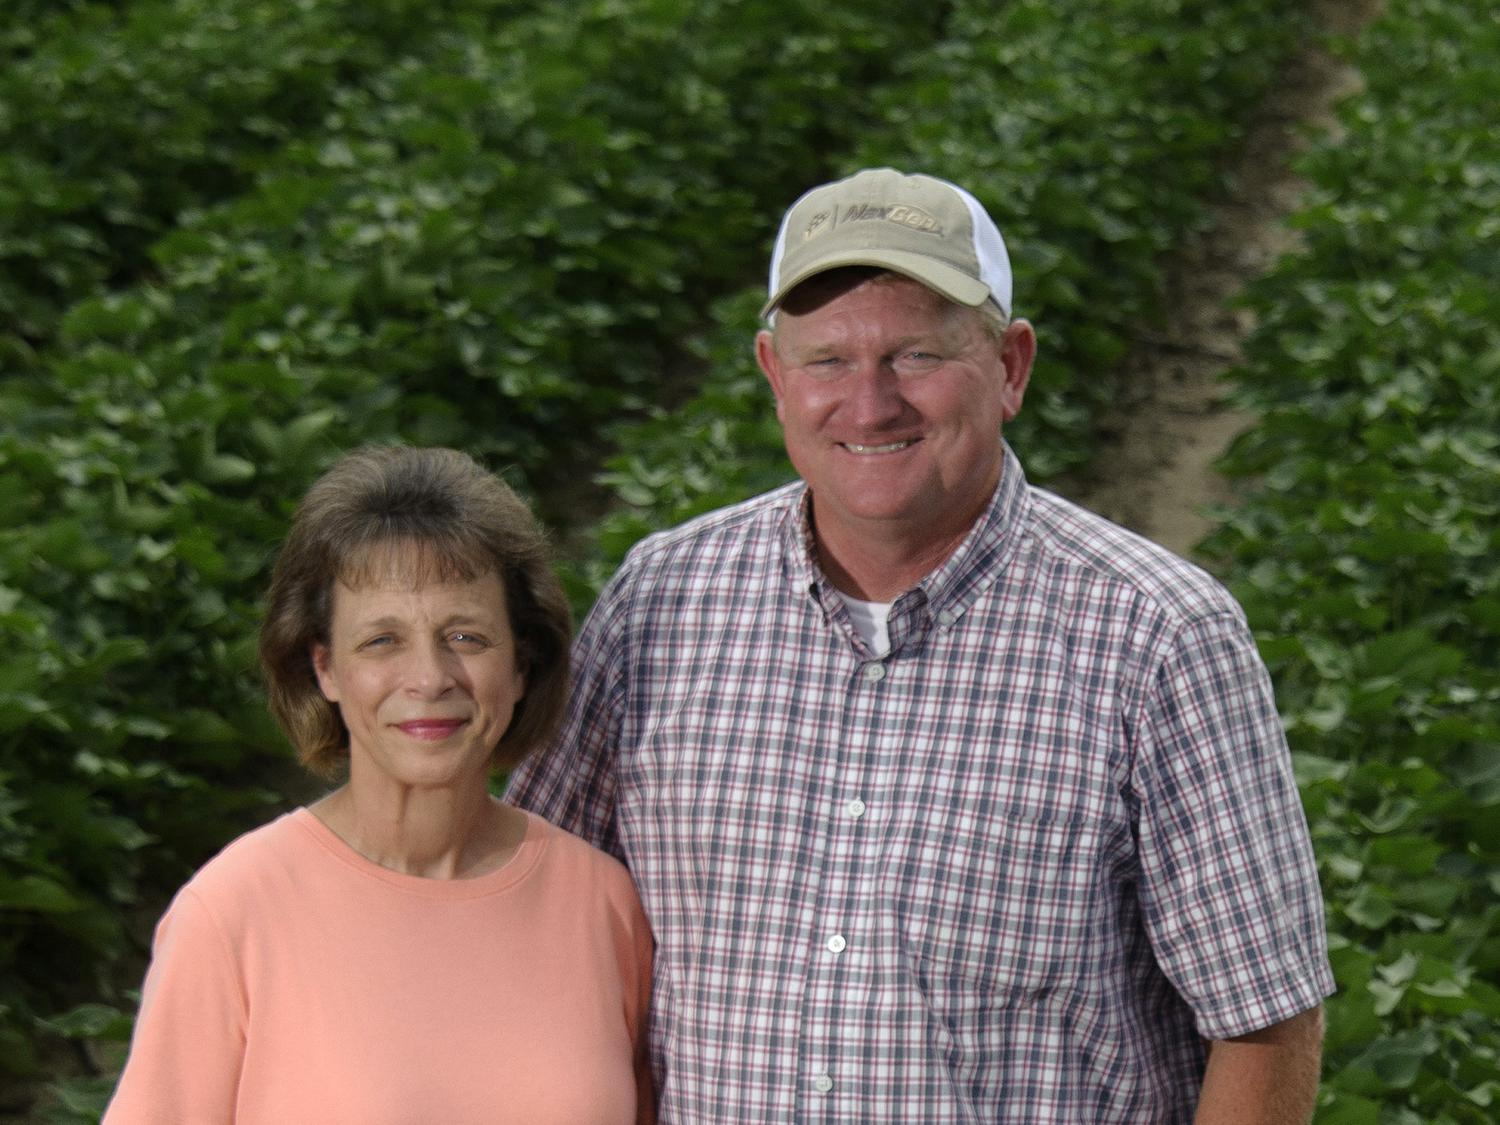 A wife and husband stand in a field with cotton rows.